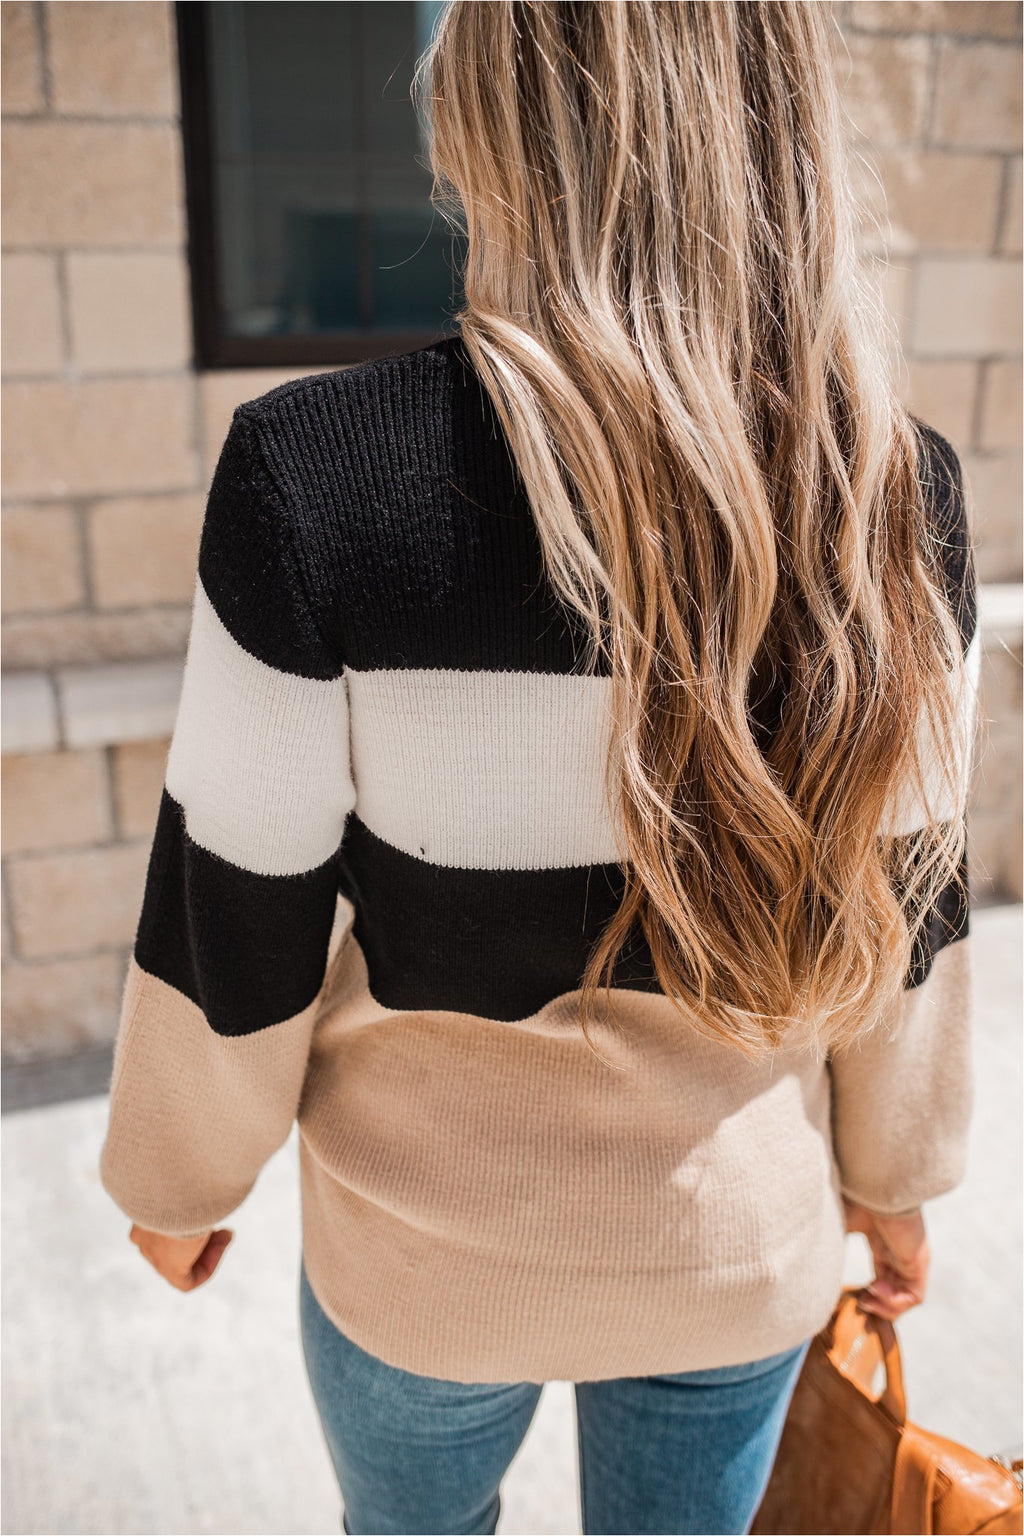 Taupe/Black Striped Puff Sleeve Sweater